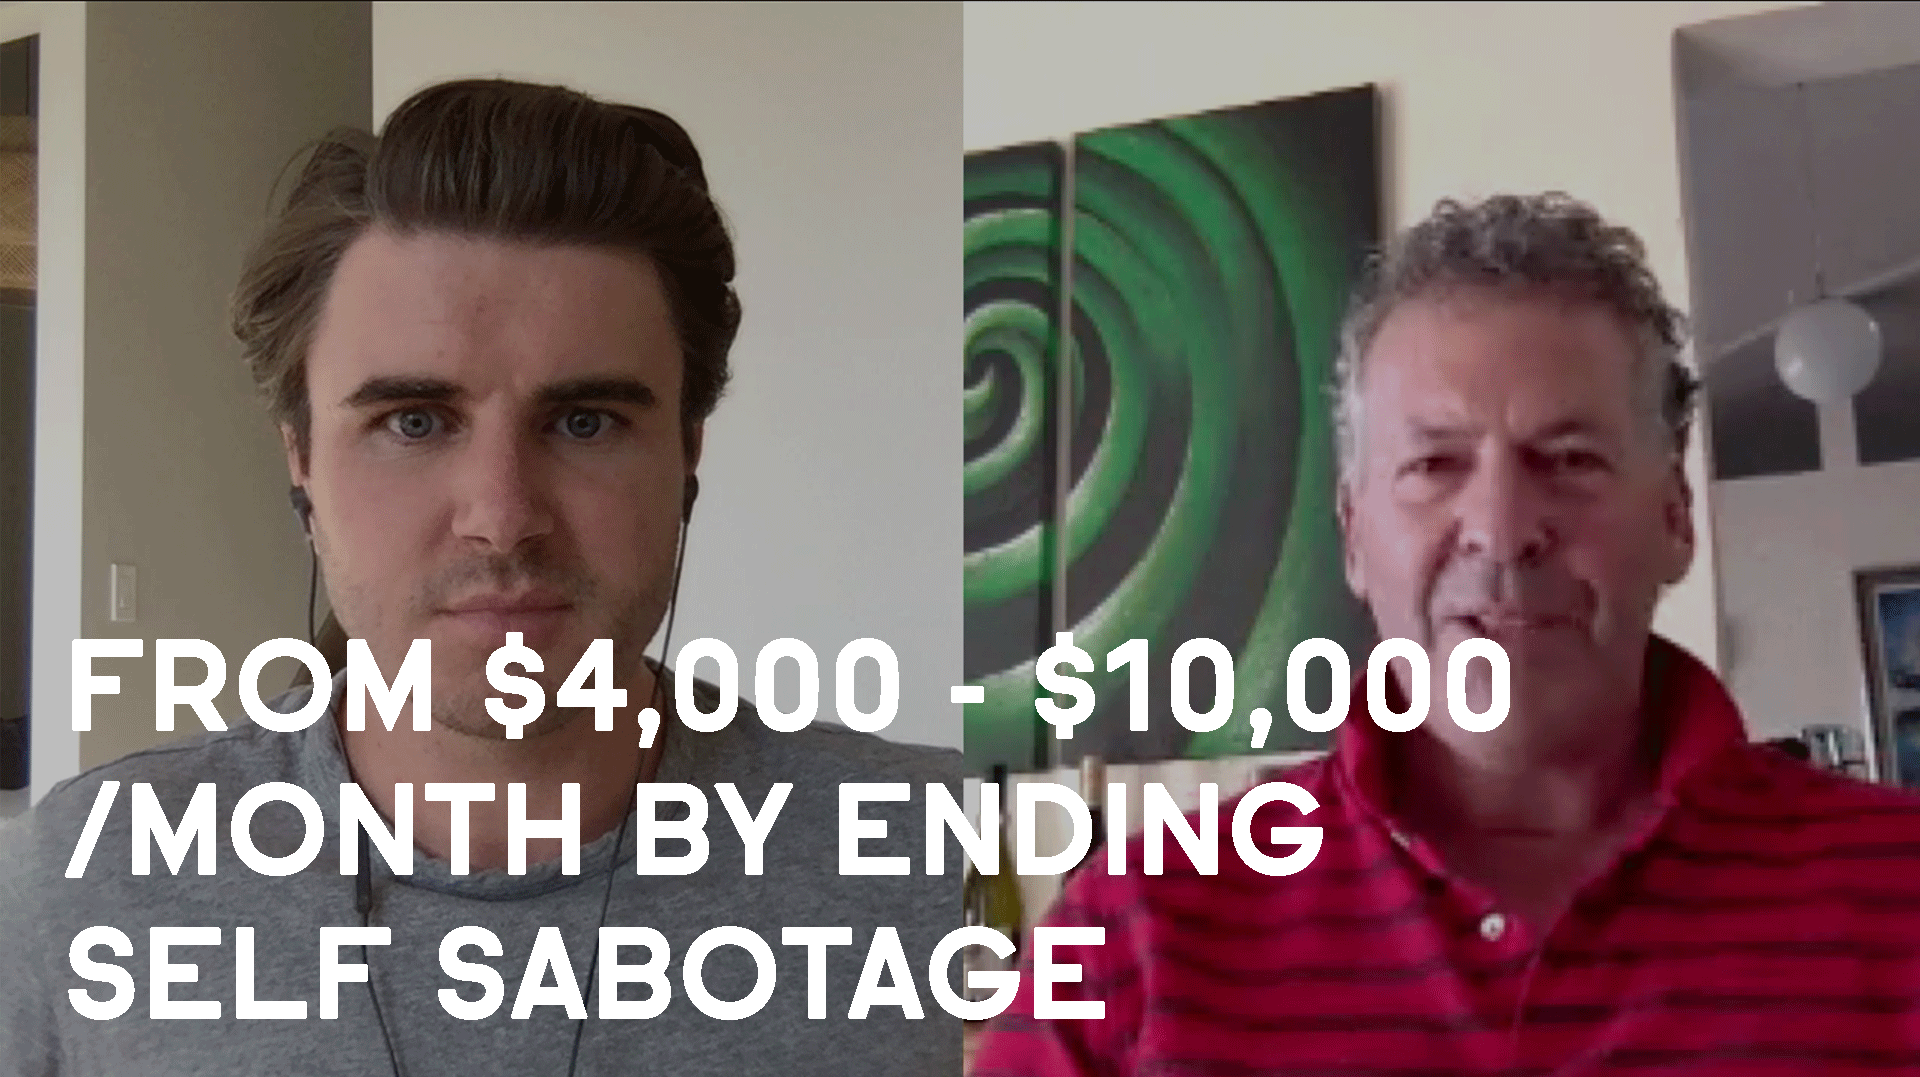 From $4,000 - $10,000 /month By Ending Self Sabotage